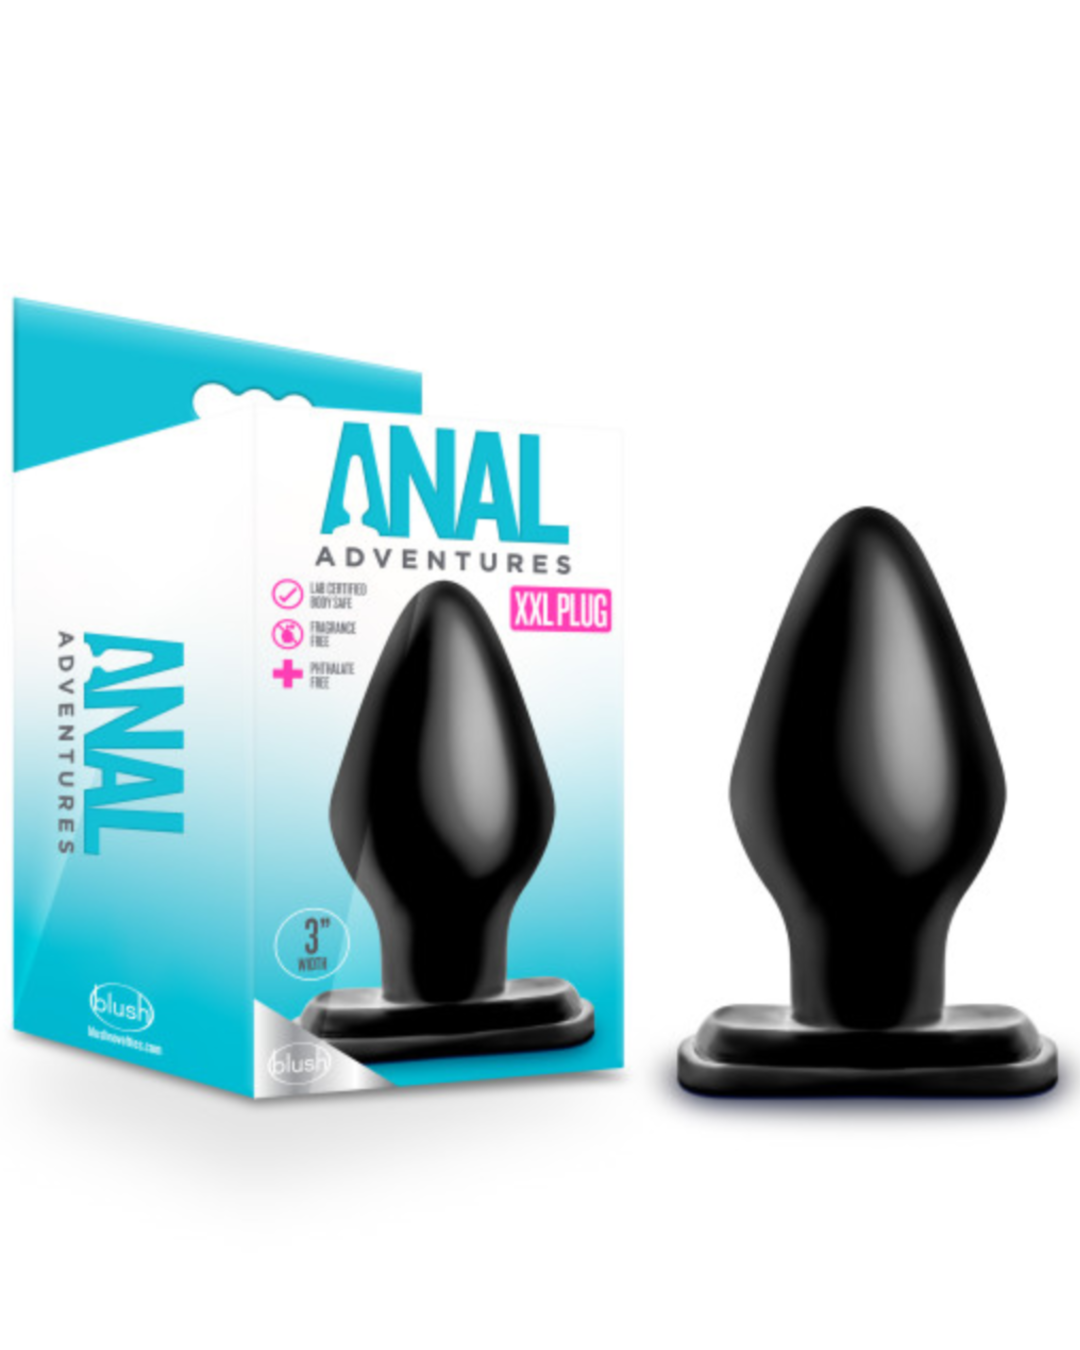 Anal Adventures XXL Butt Plug by Blush Novelties with Box